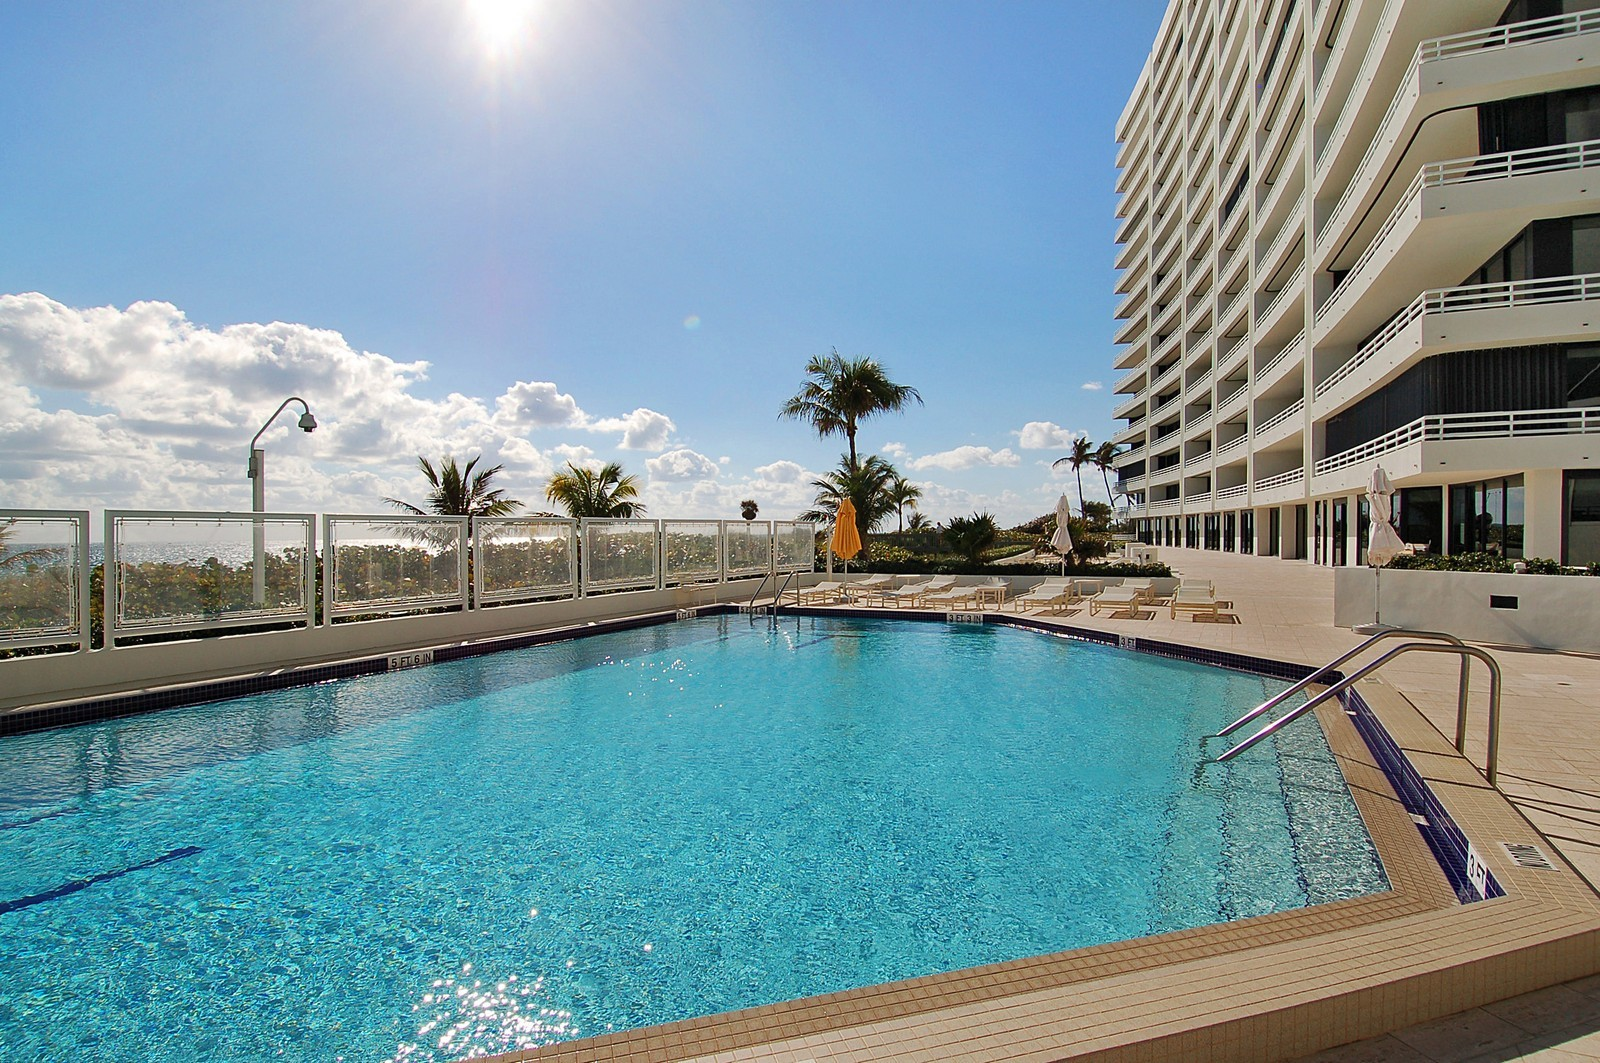 Real Estate Photography - 1400 S Ocean Blvd, Unit N1103-1104, Boca Raton, FL, 33432 - Pool